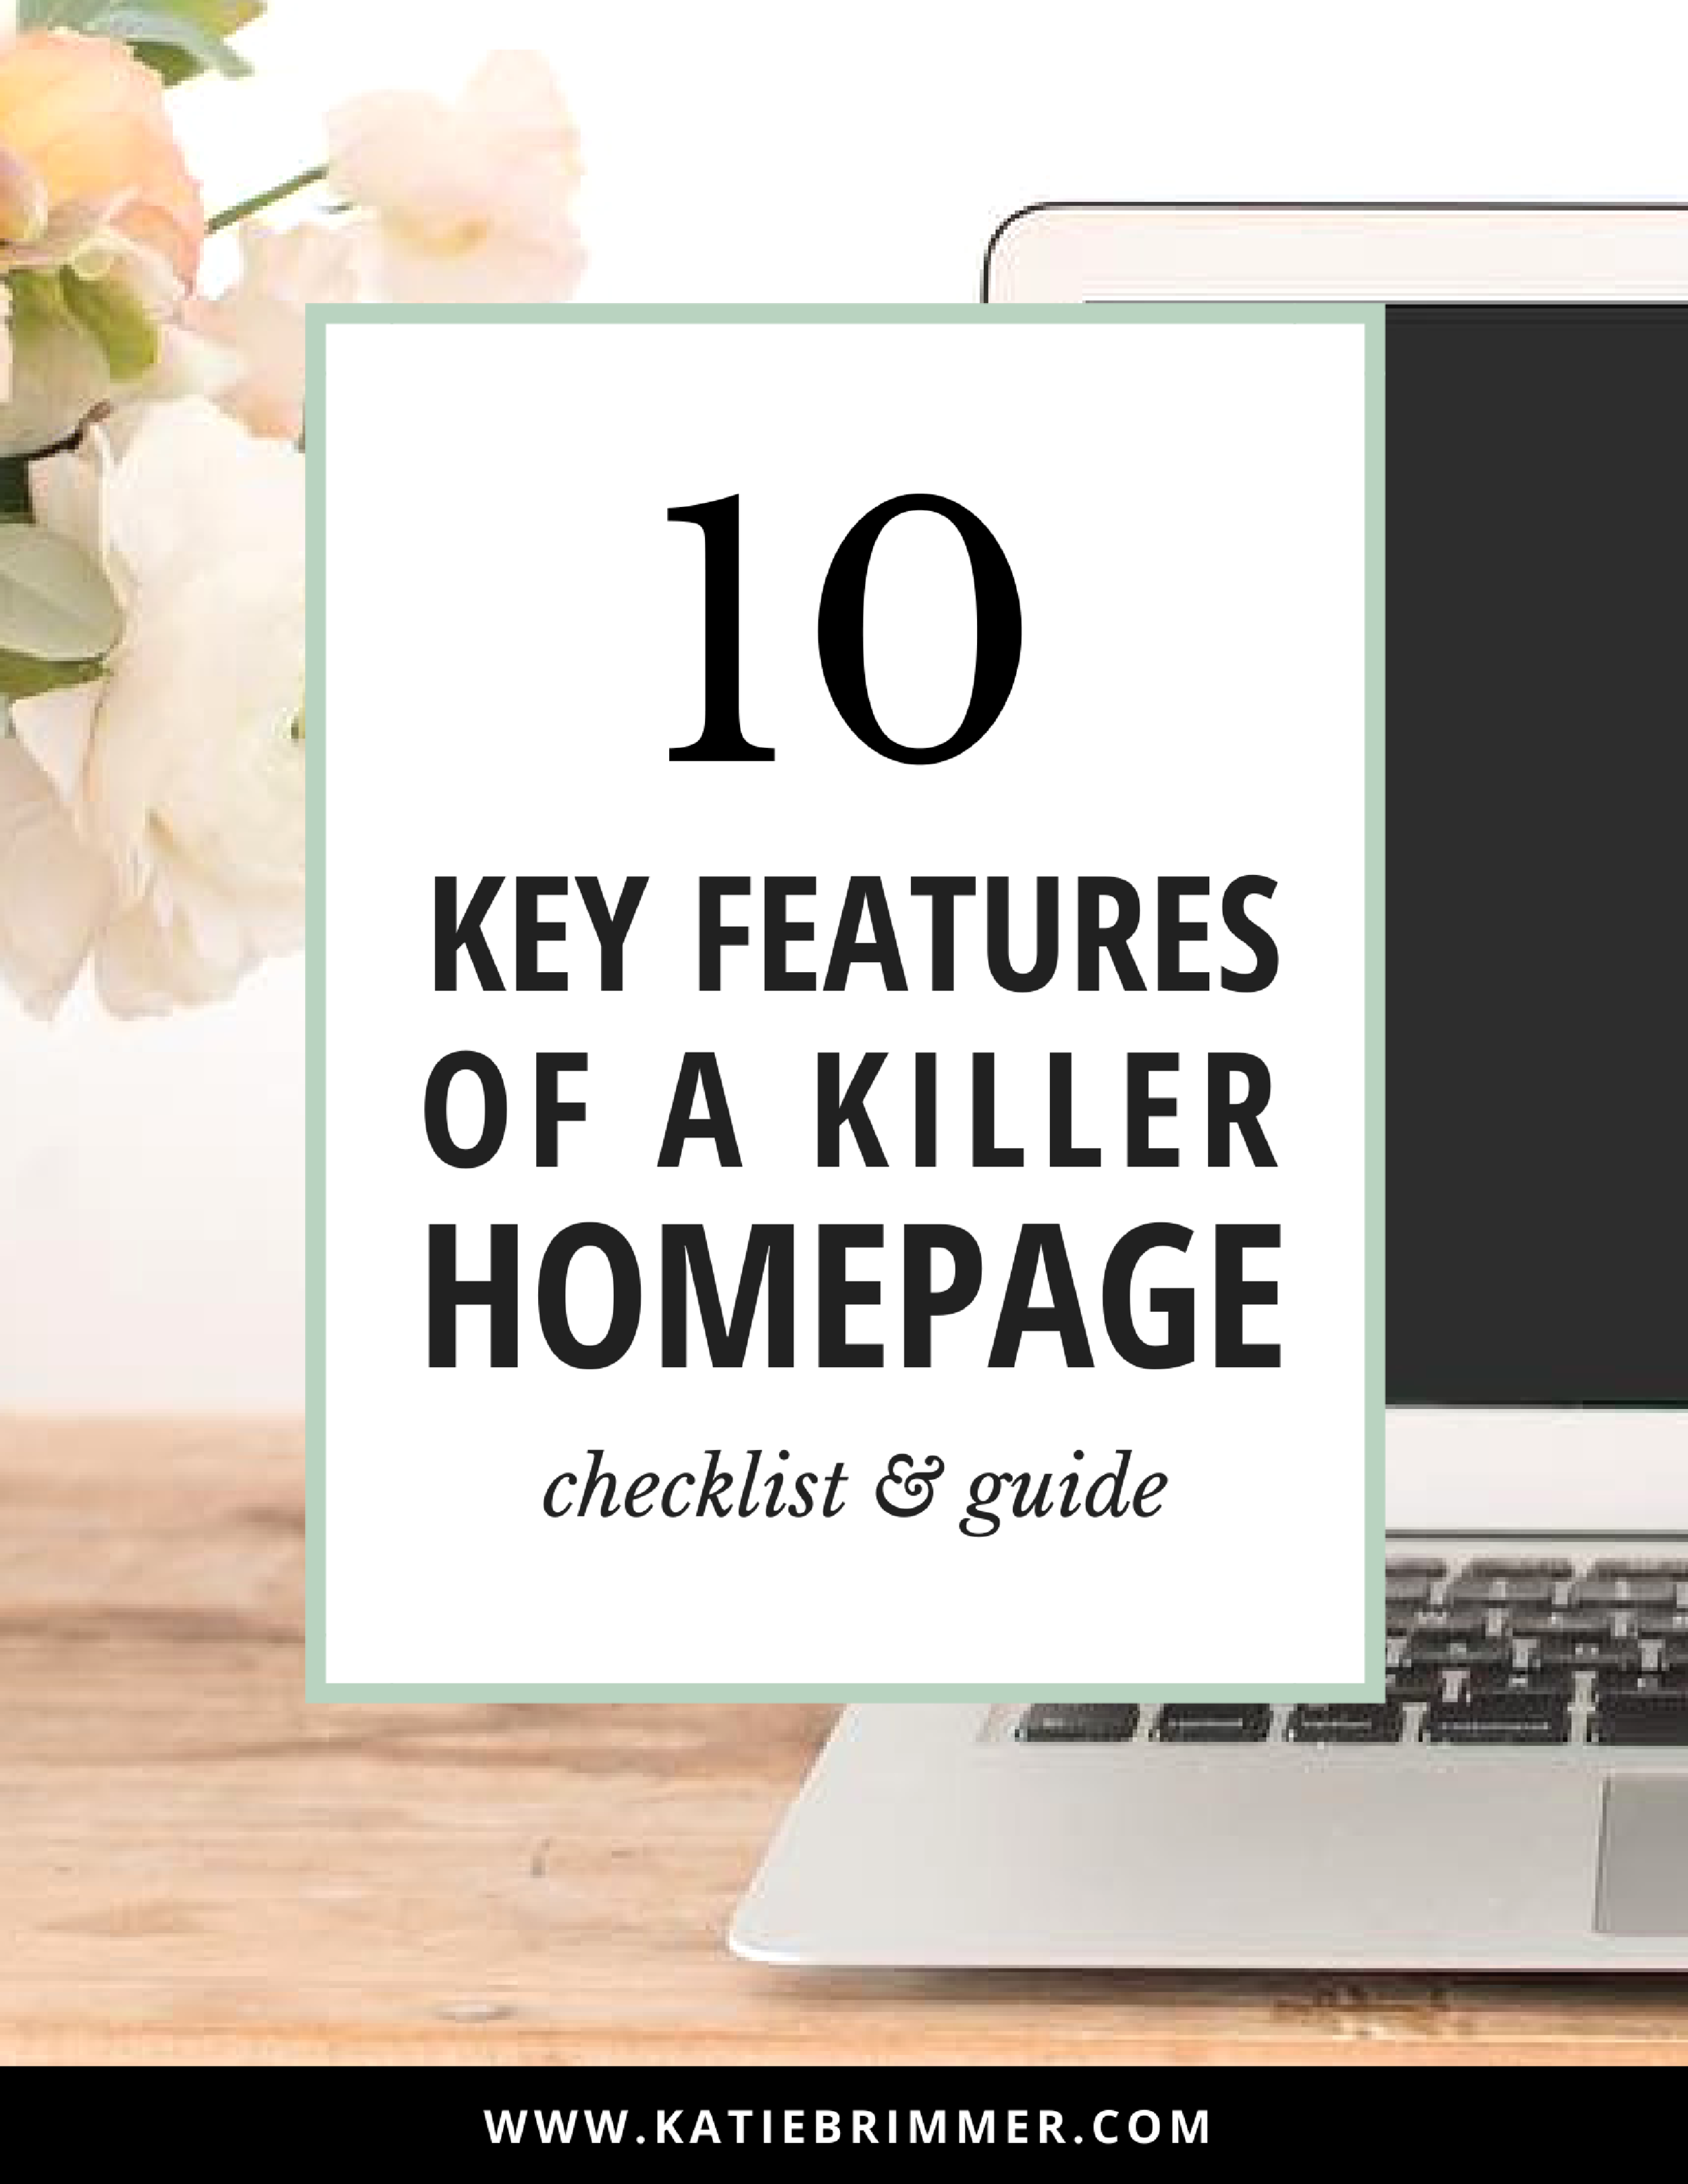 10 Key Features of a Killer Homepage | Ever feel overwhelmed with what you should really have on your homepage? It's all about igniting intrigue within your visitors, and encouraging exploration into your site, getting them to click, engage, and take action. In this post I'll show you the 10 key features you need to include to make a killer homepage for your website or blog.